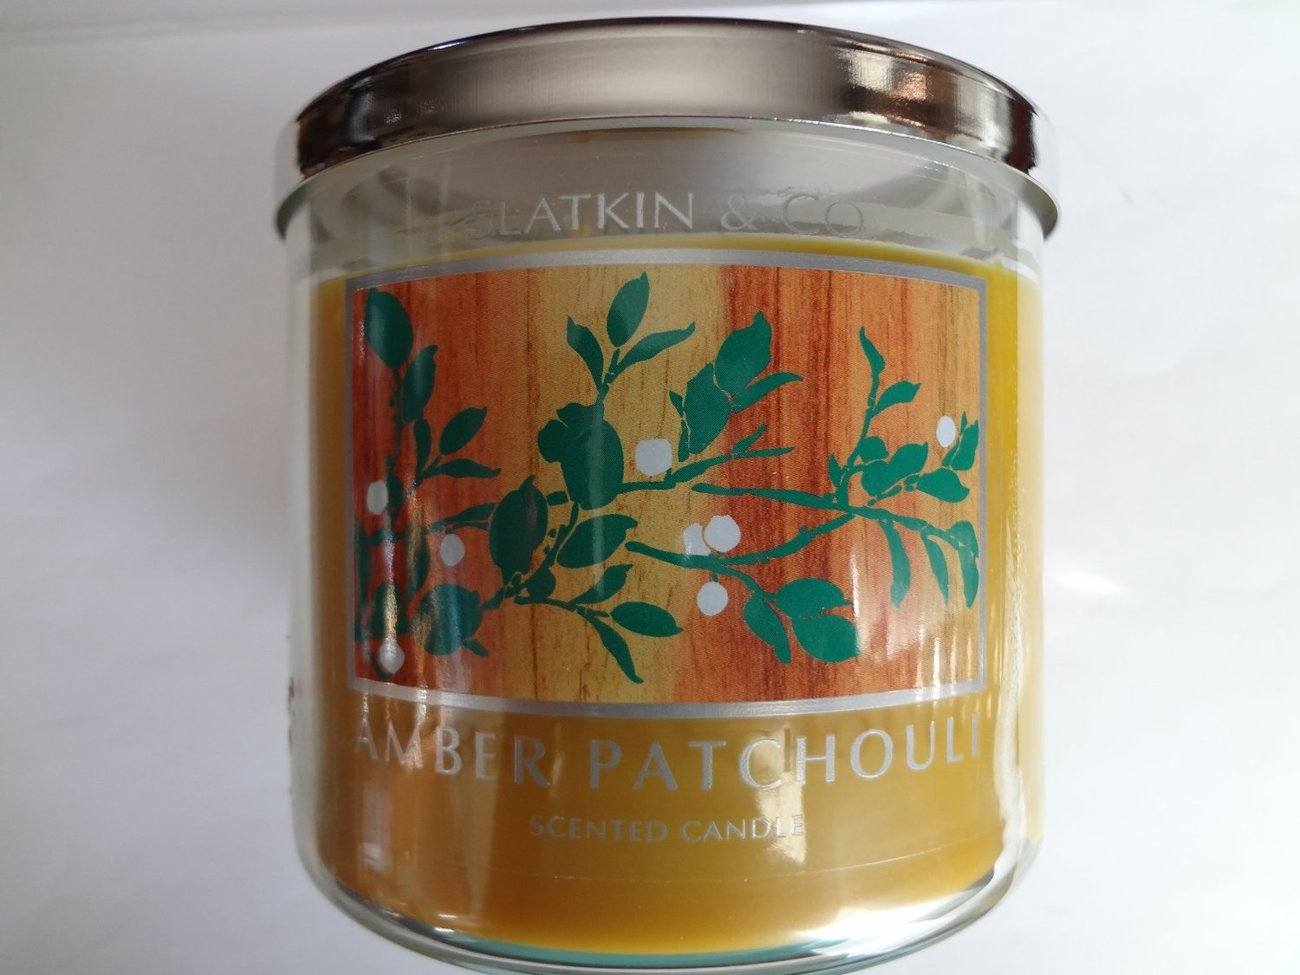 Bath & Body Works Slatin & Co. AMBER PATCHOULI Scented Candle 14.5 oz/ 411 g